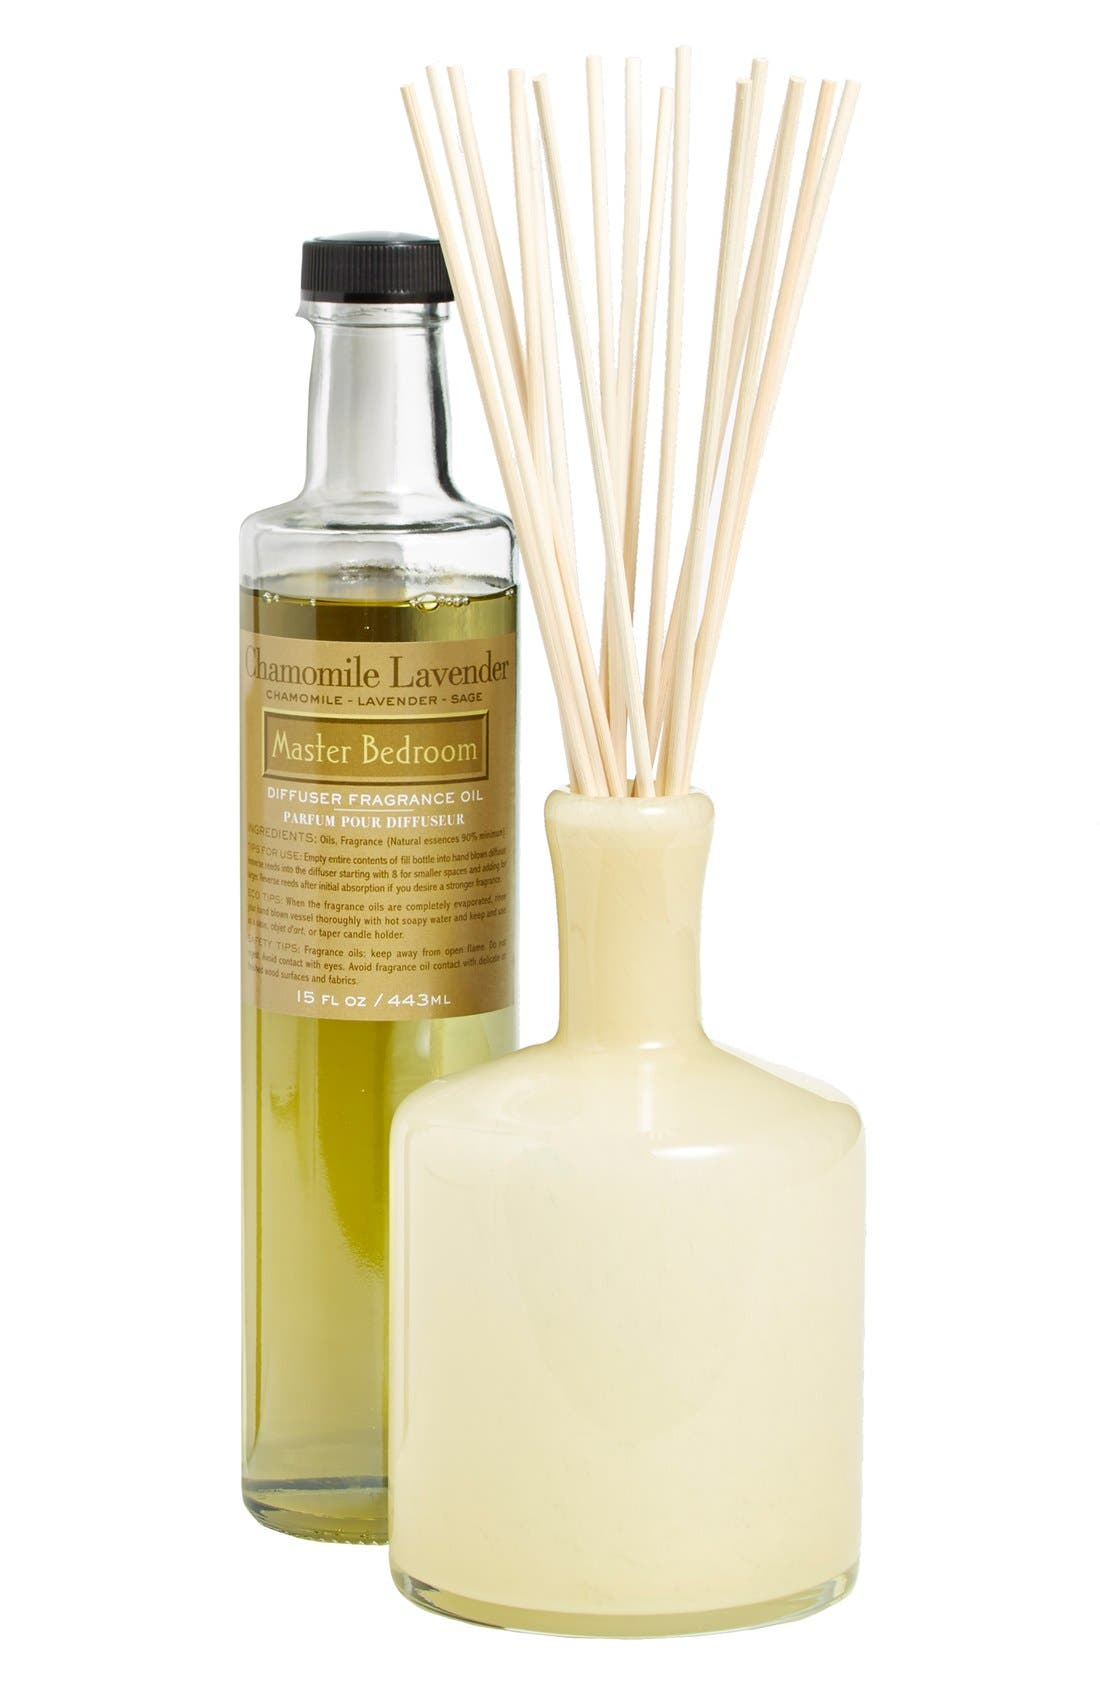 'Chamomile Lavender - Master Bedroom' Fragrance Diffuser,                             Main thumbnail 1, color,                             No Color